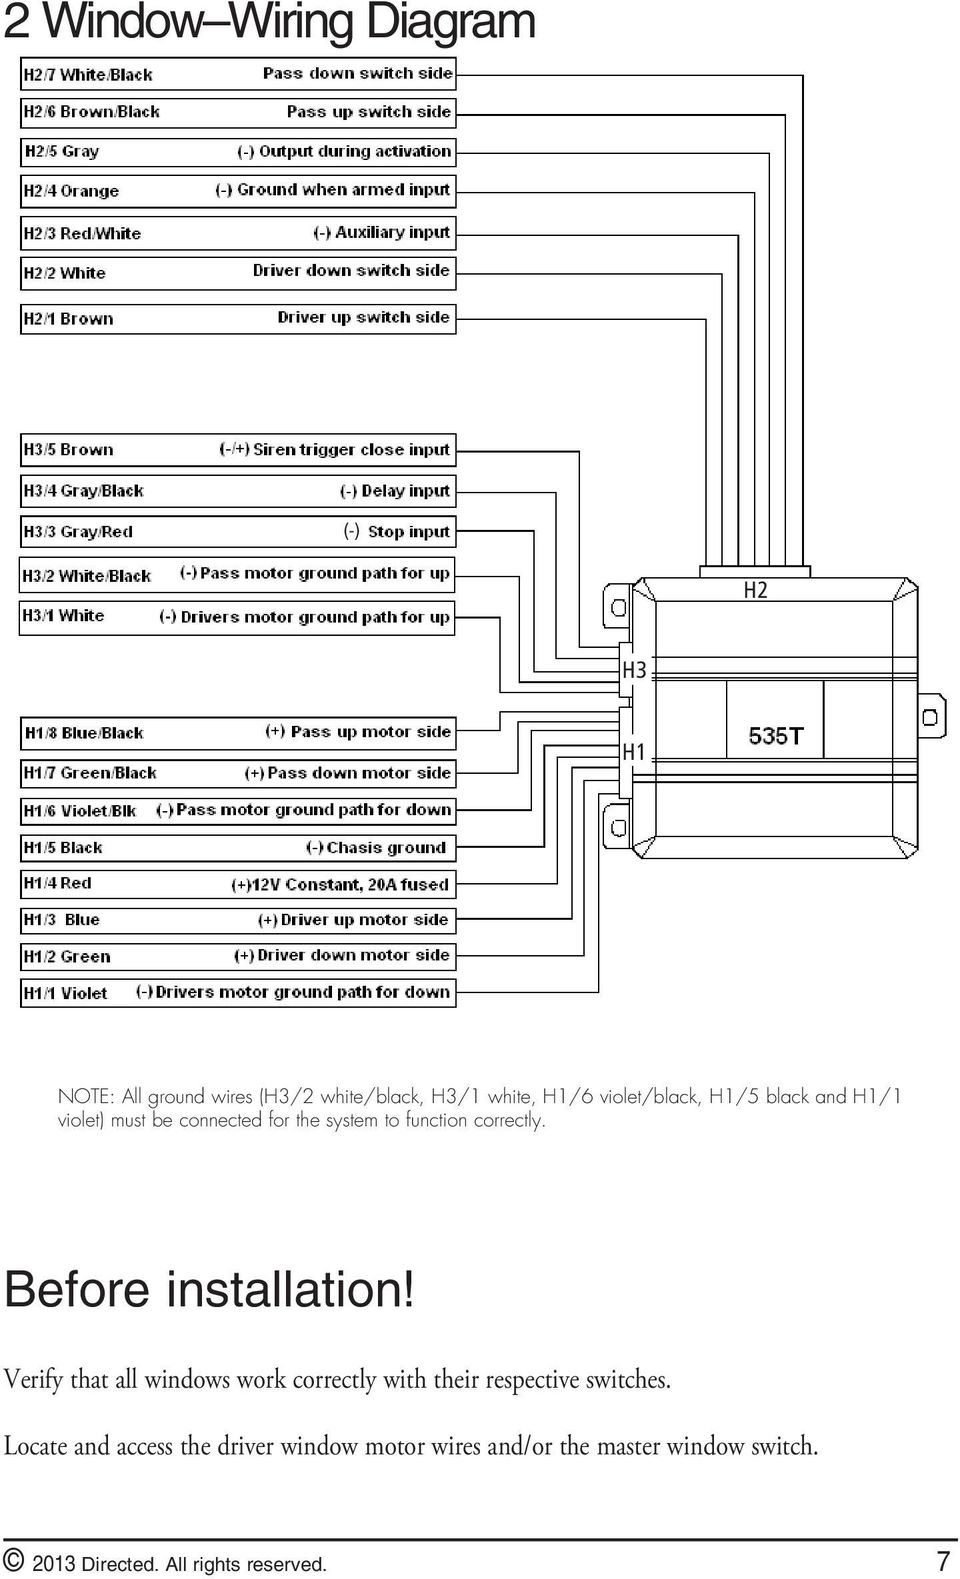 535t window automation system